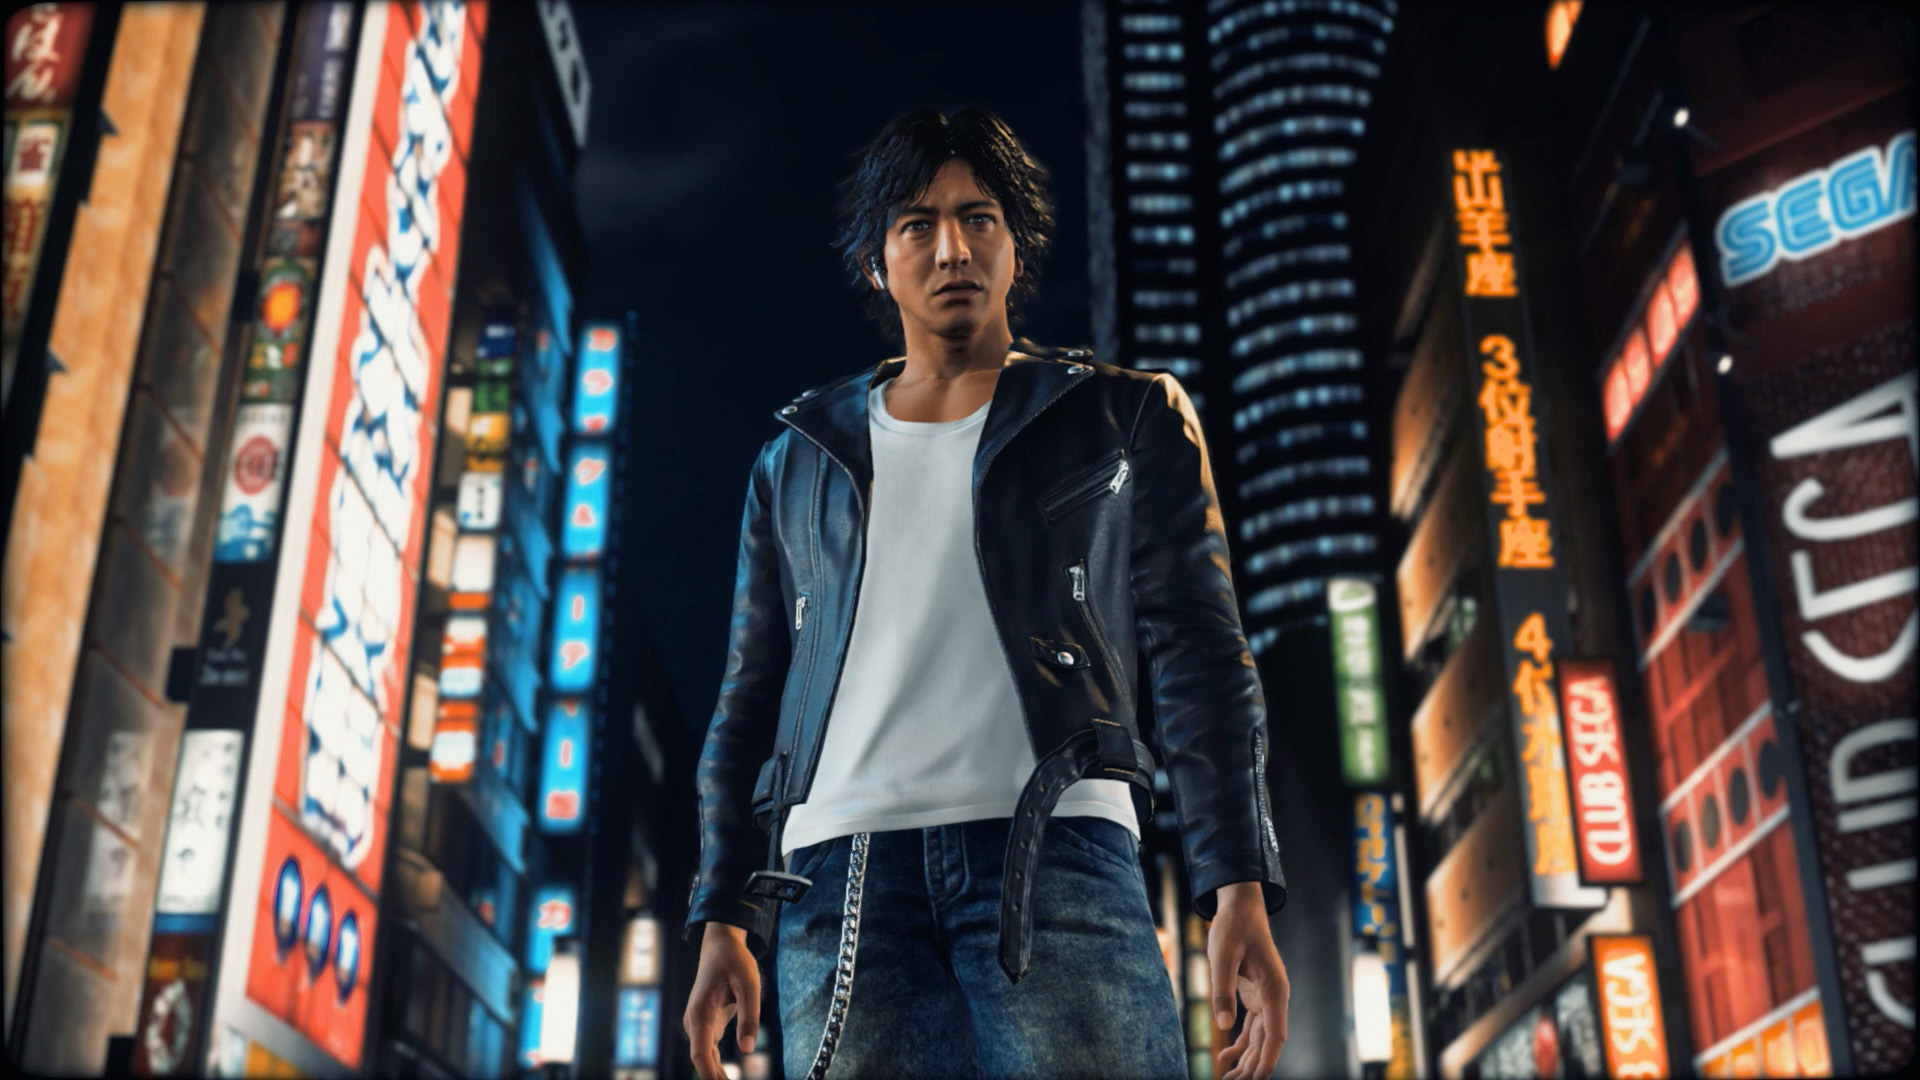 Judgment review: Same city, different eyes